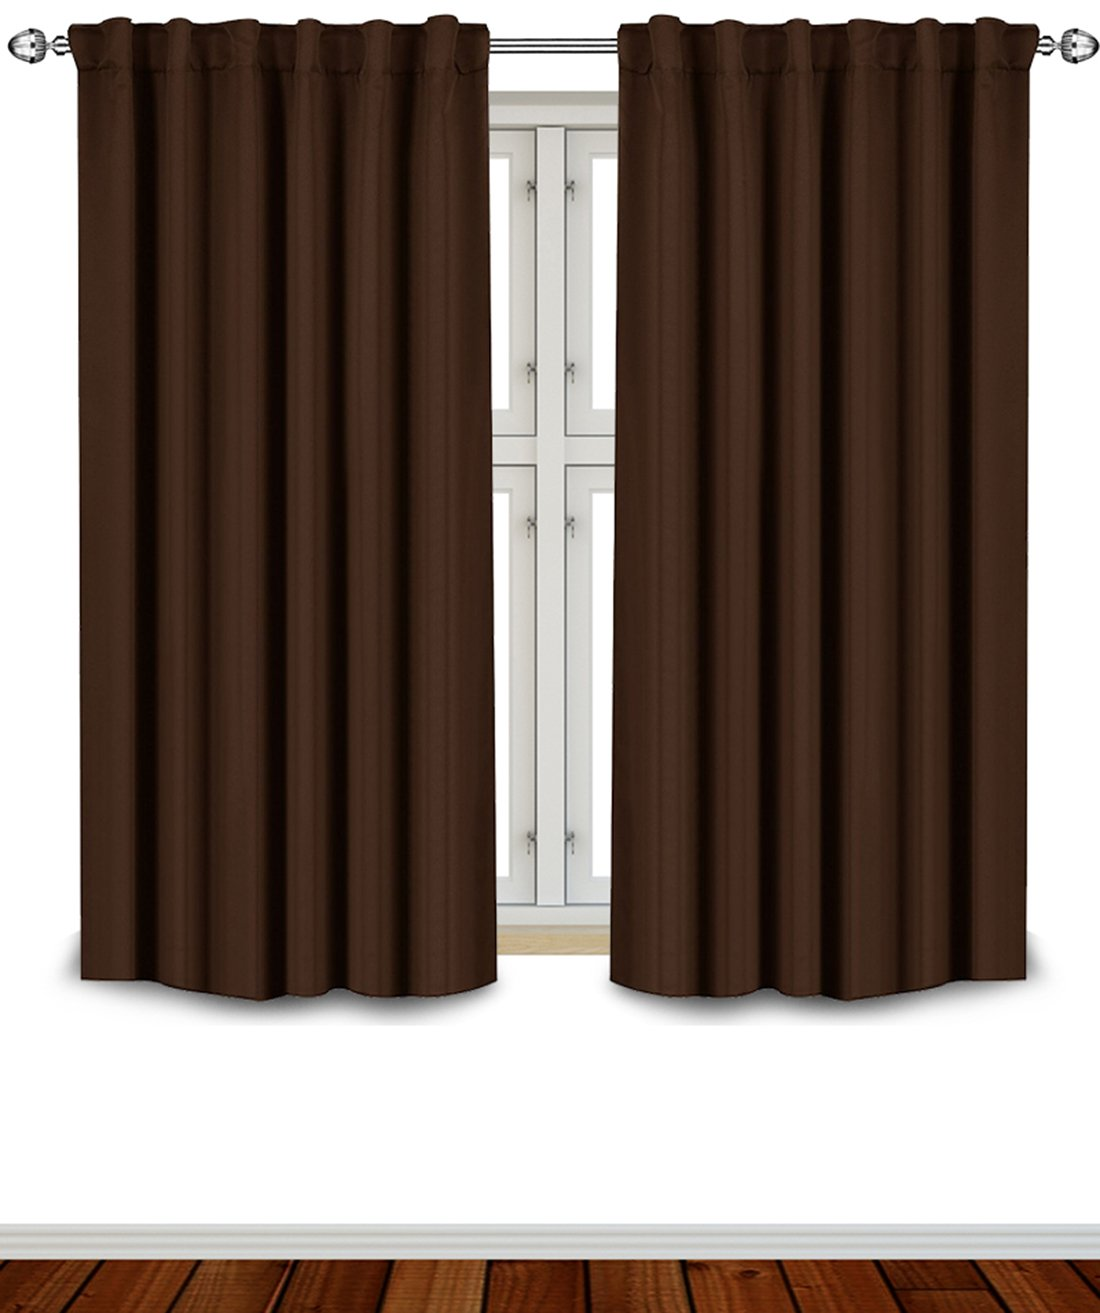 Blackout Room Darkening Curtains Window Panel Drapes - Chocolate Color 2 Panel Set